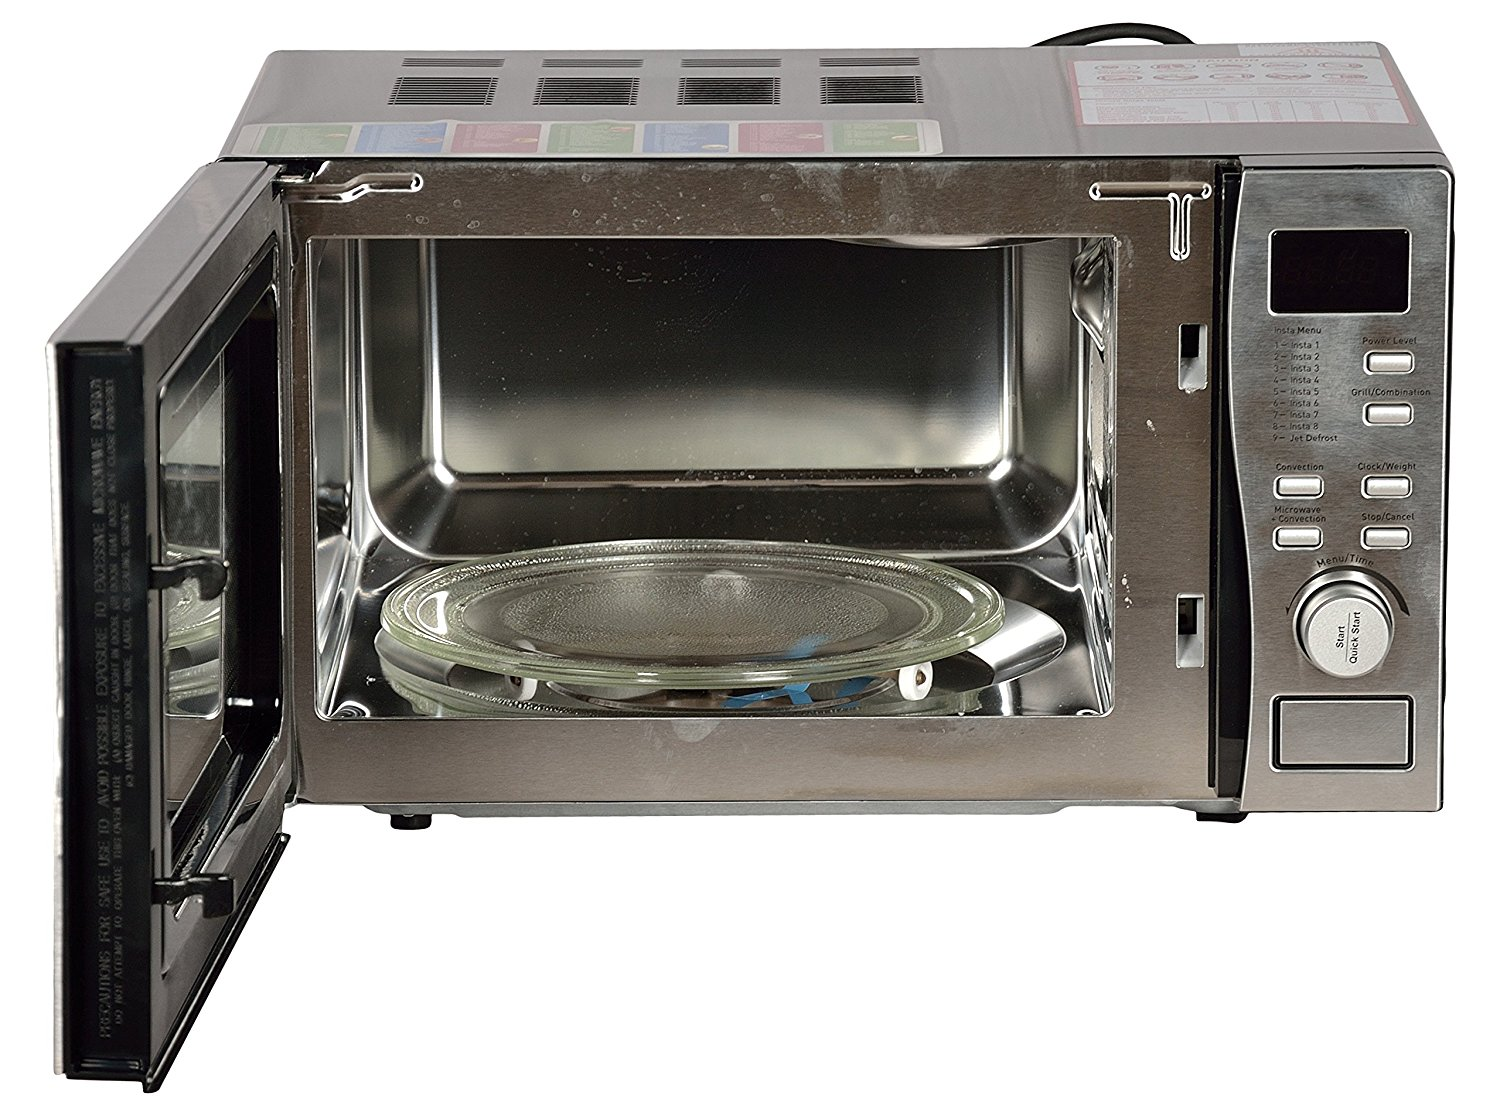 Godrej 20 liters  convection microwave oven